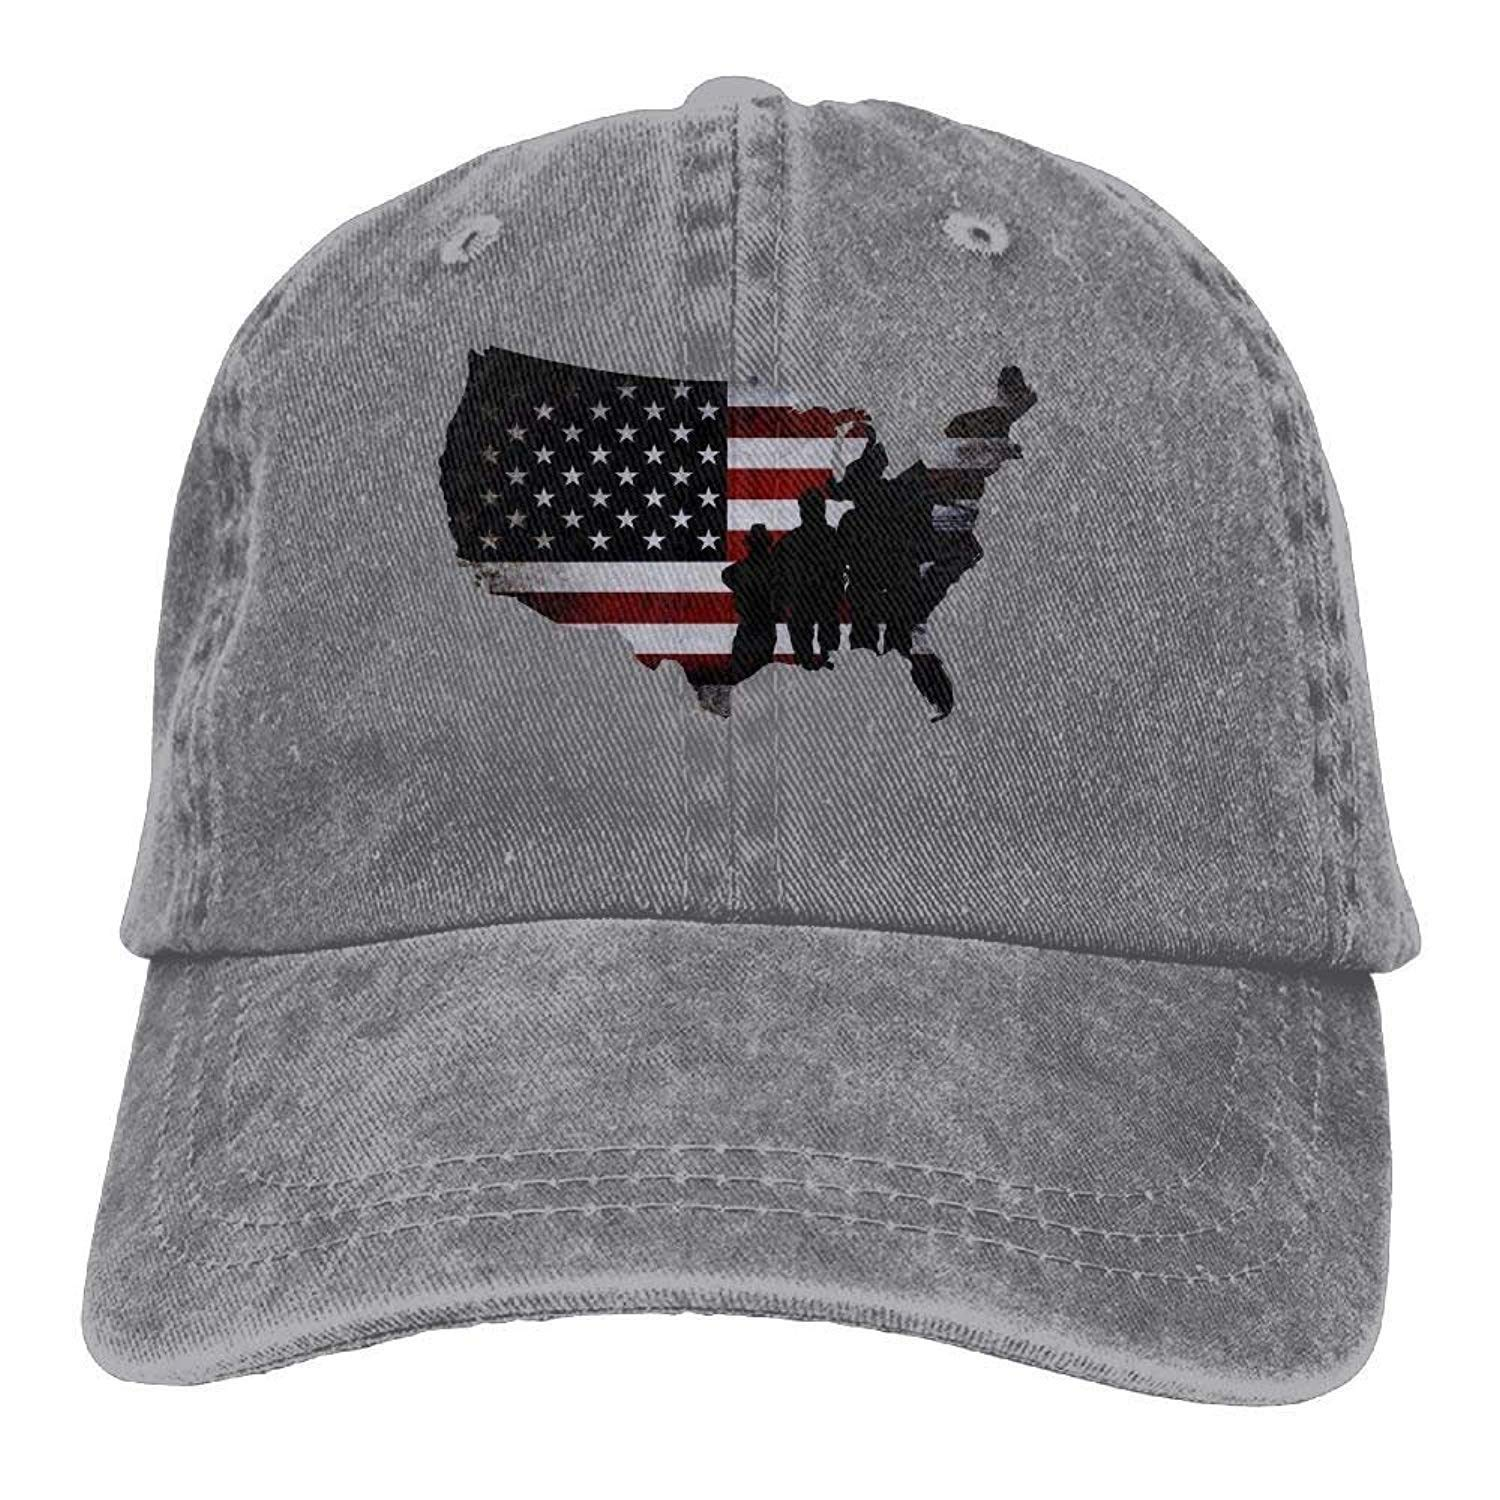 JTRVW Adults Veterans Day US Flag Map Adjustable Casual Cool Baseball Cap Retro Cowboy Hat Cotton Dyed Caps